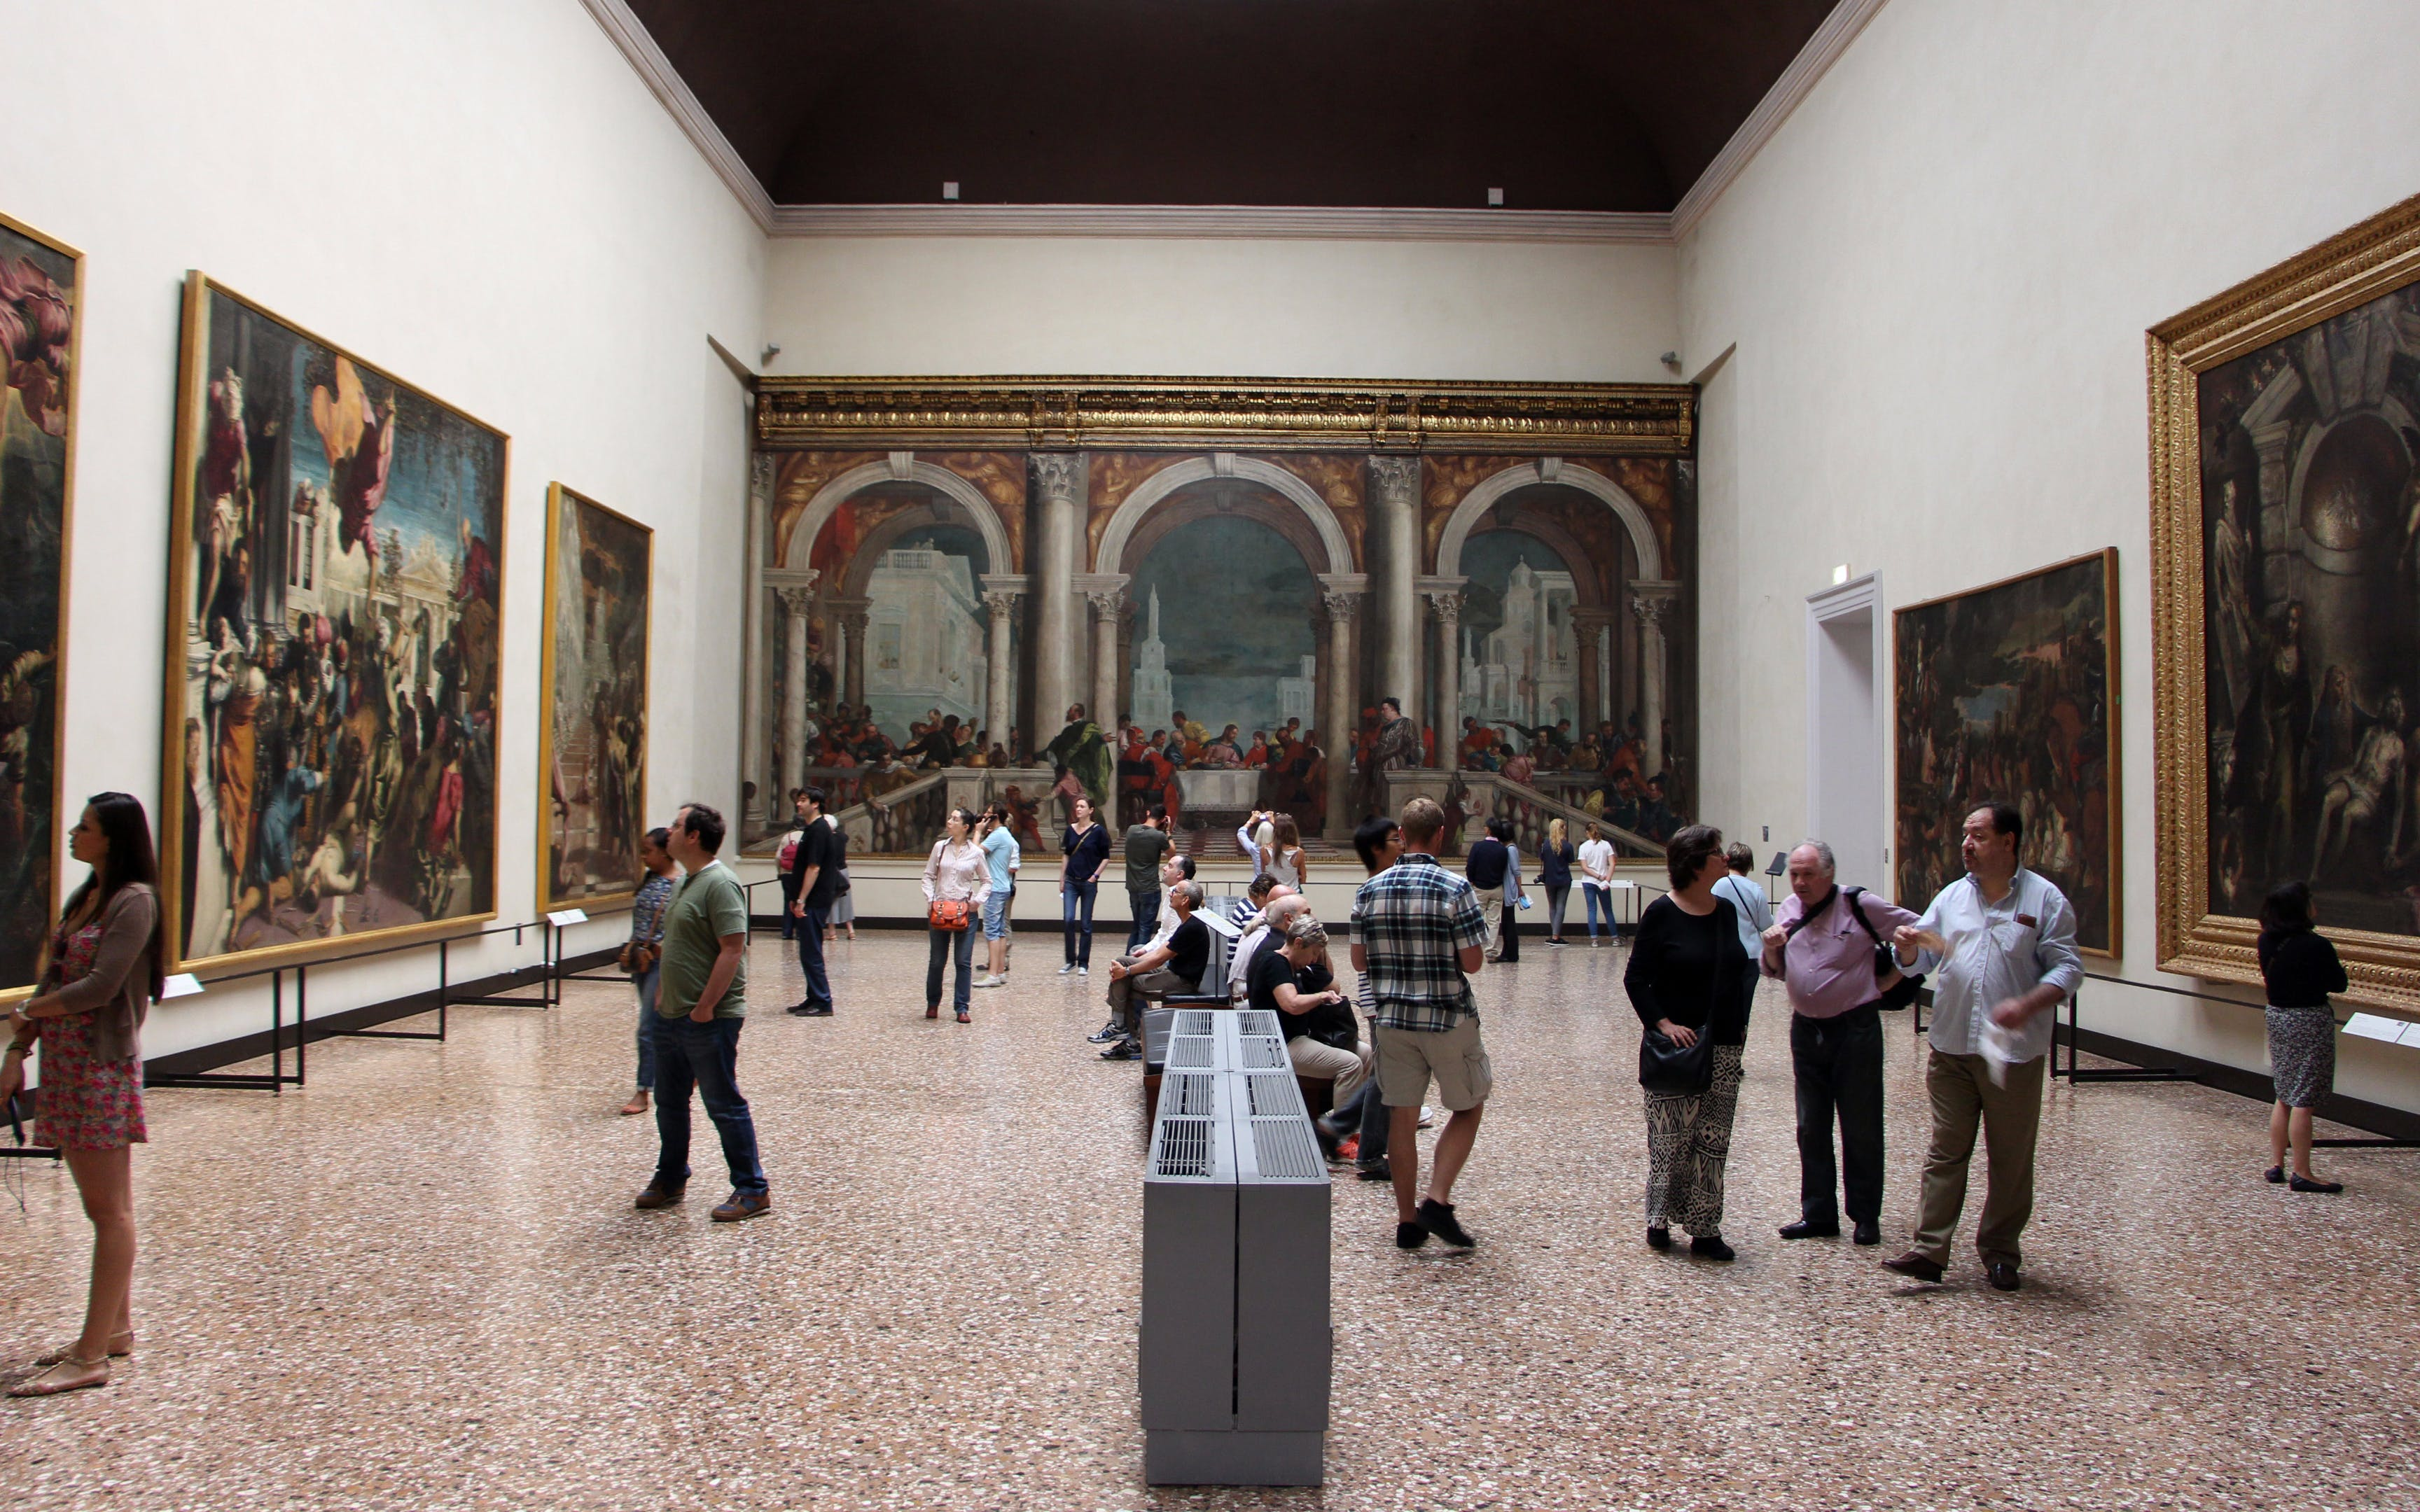 accademia gallery guided tour with skip the line tickets-2